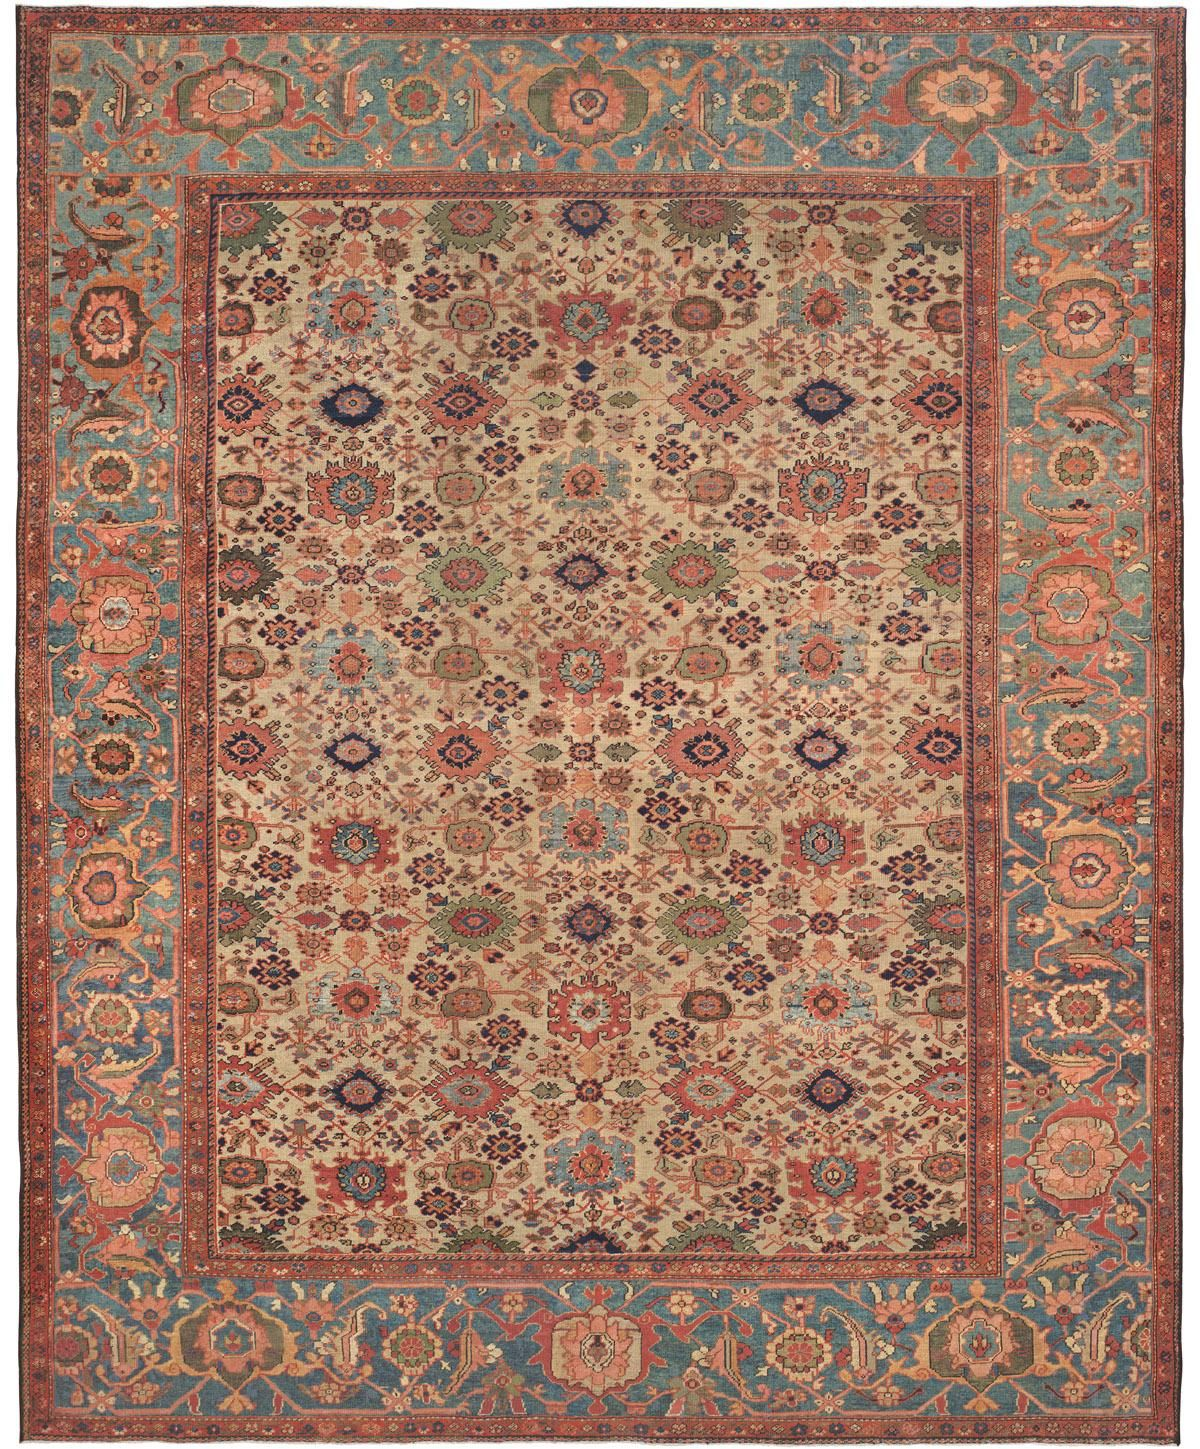 Sorry This Rug Is No Longer Available With Images Rugs On Carpet Antique Oriental Rugs Antique Persian Rug